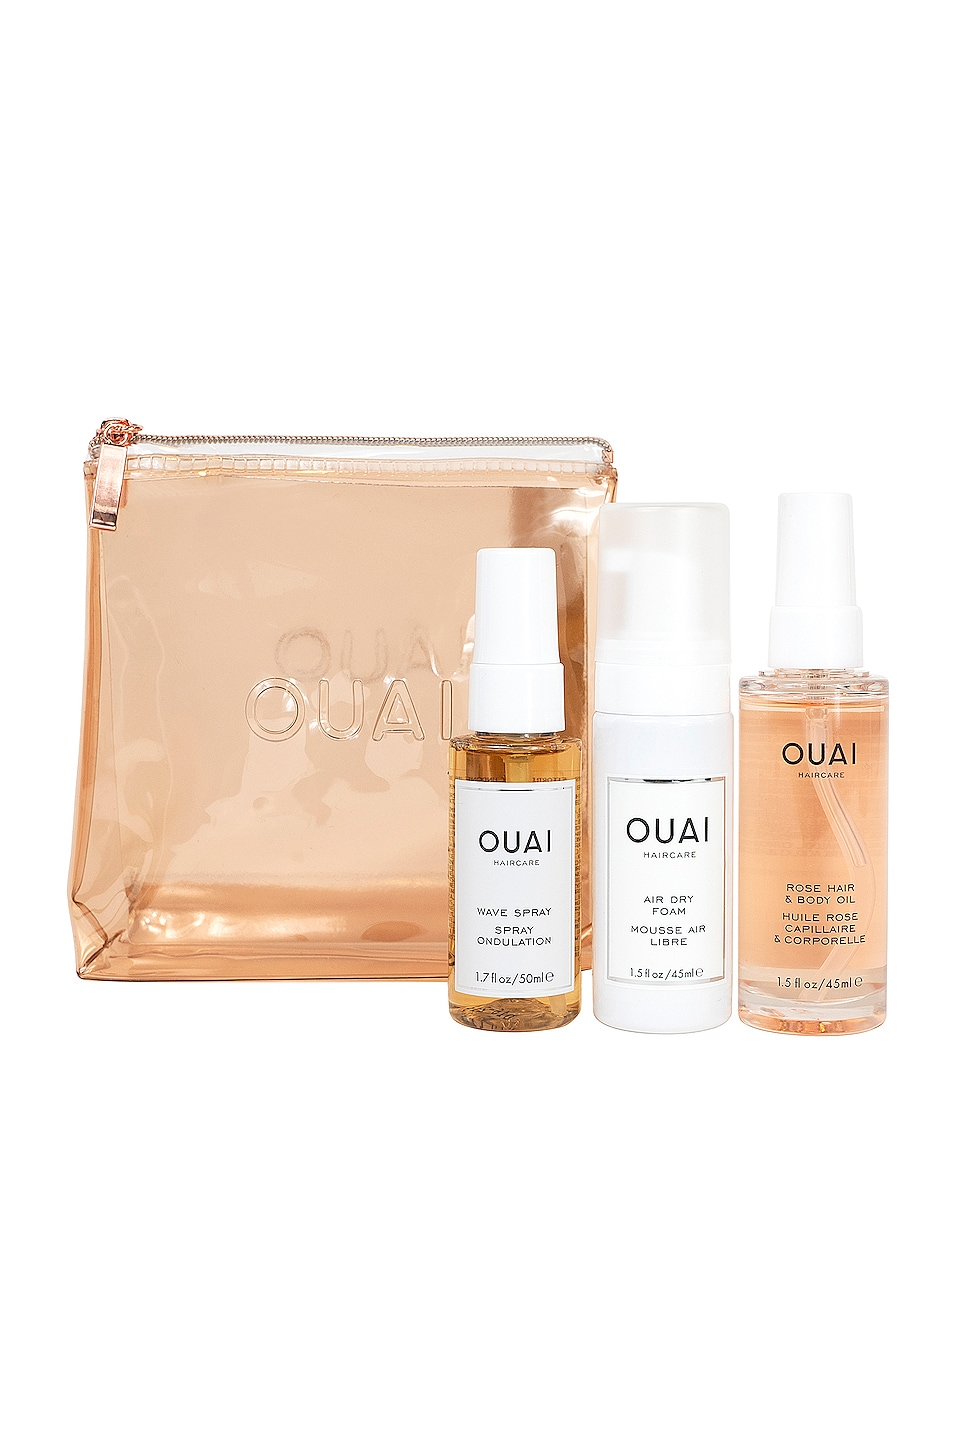 OUAI KIT CAPILAR THE EASY OUAI